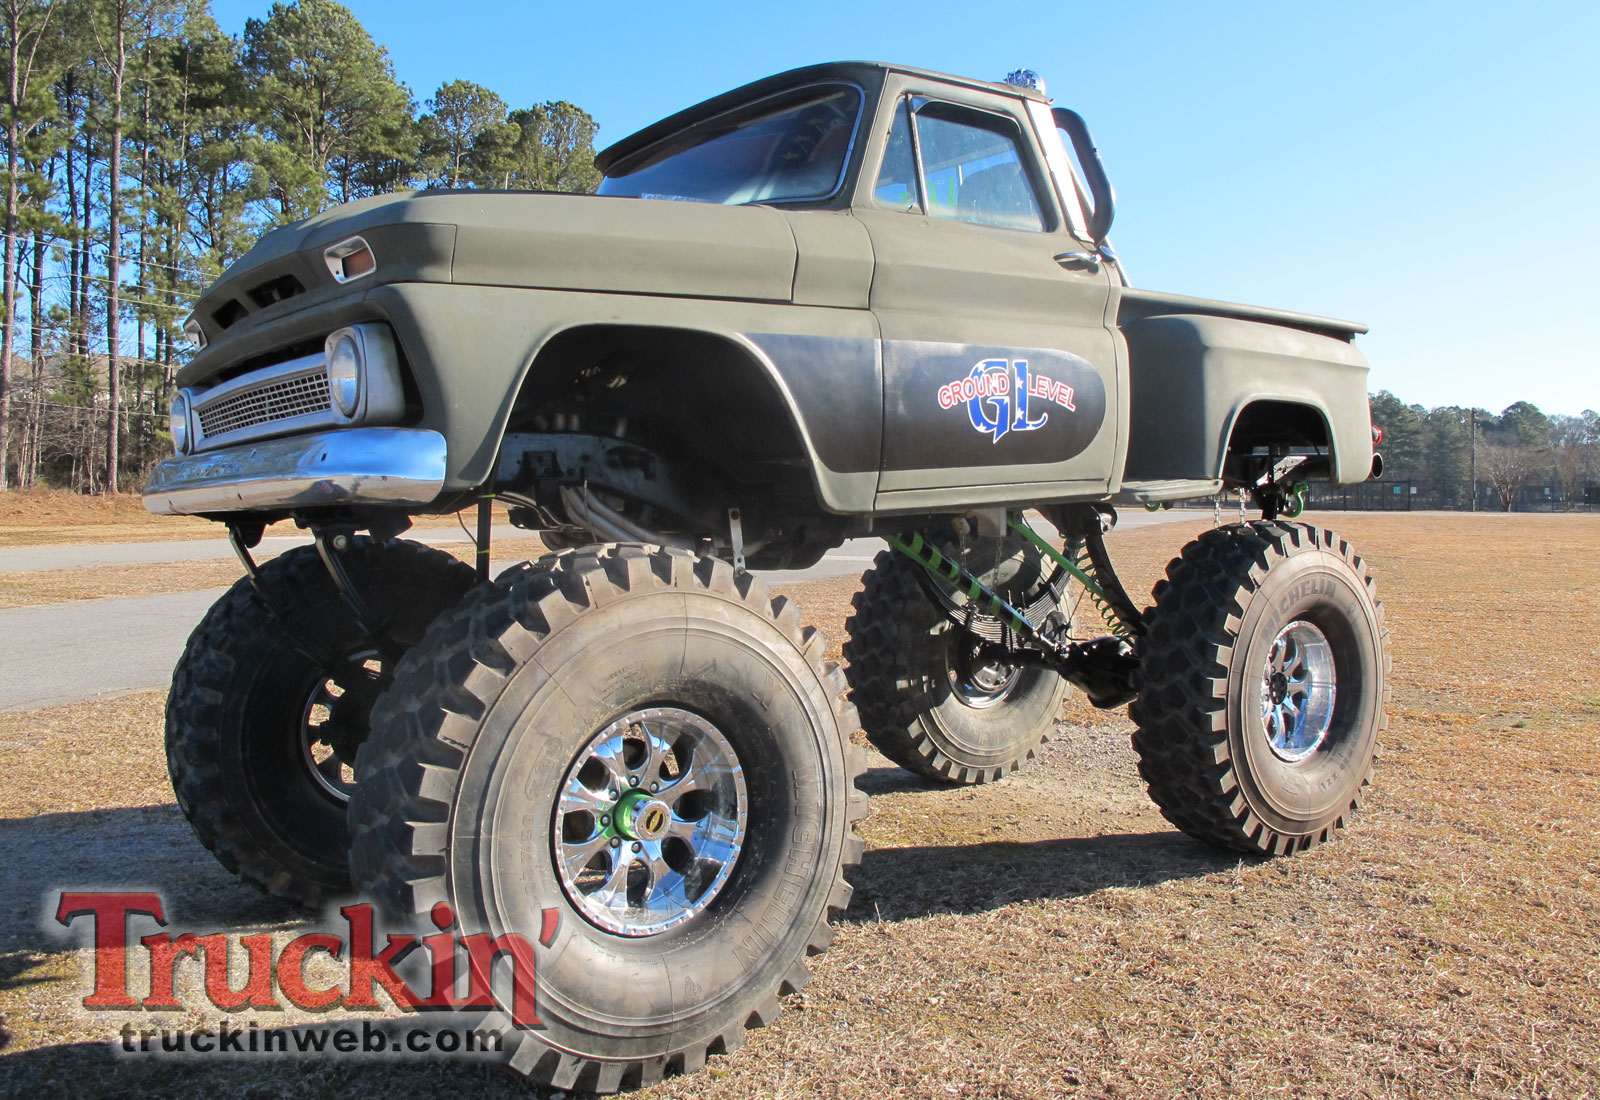 Lifted Chevy Trucks Wallpaper Wallpapersafari 1968 Truck 2010 Blooddrag Custom Show Classic 1600x1100